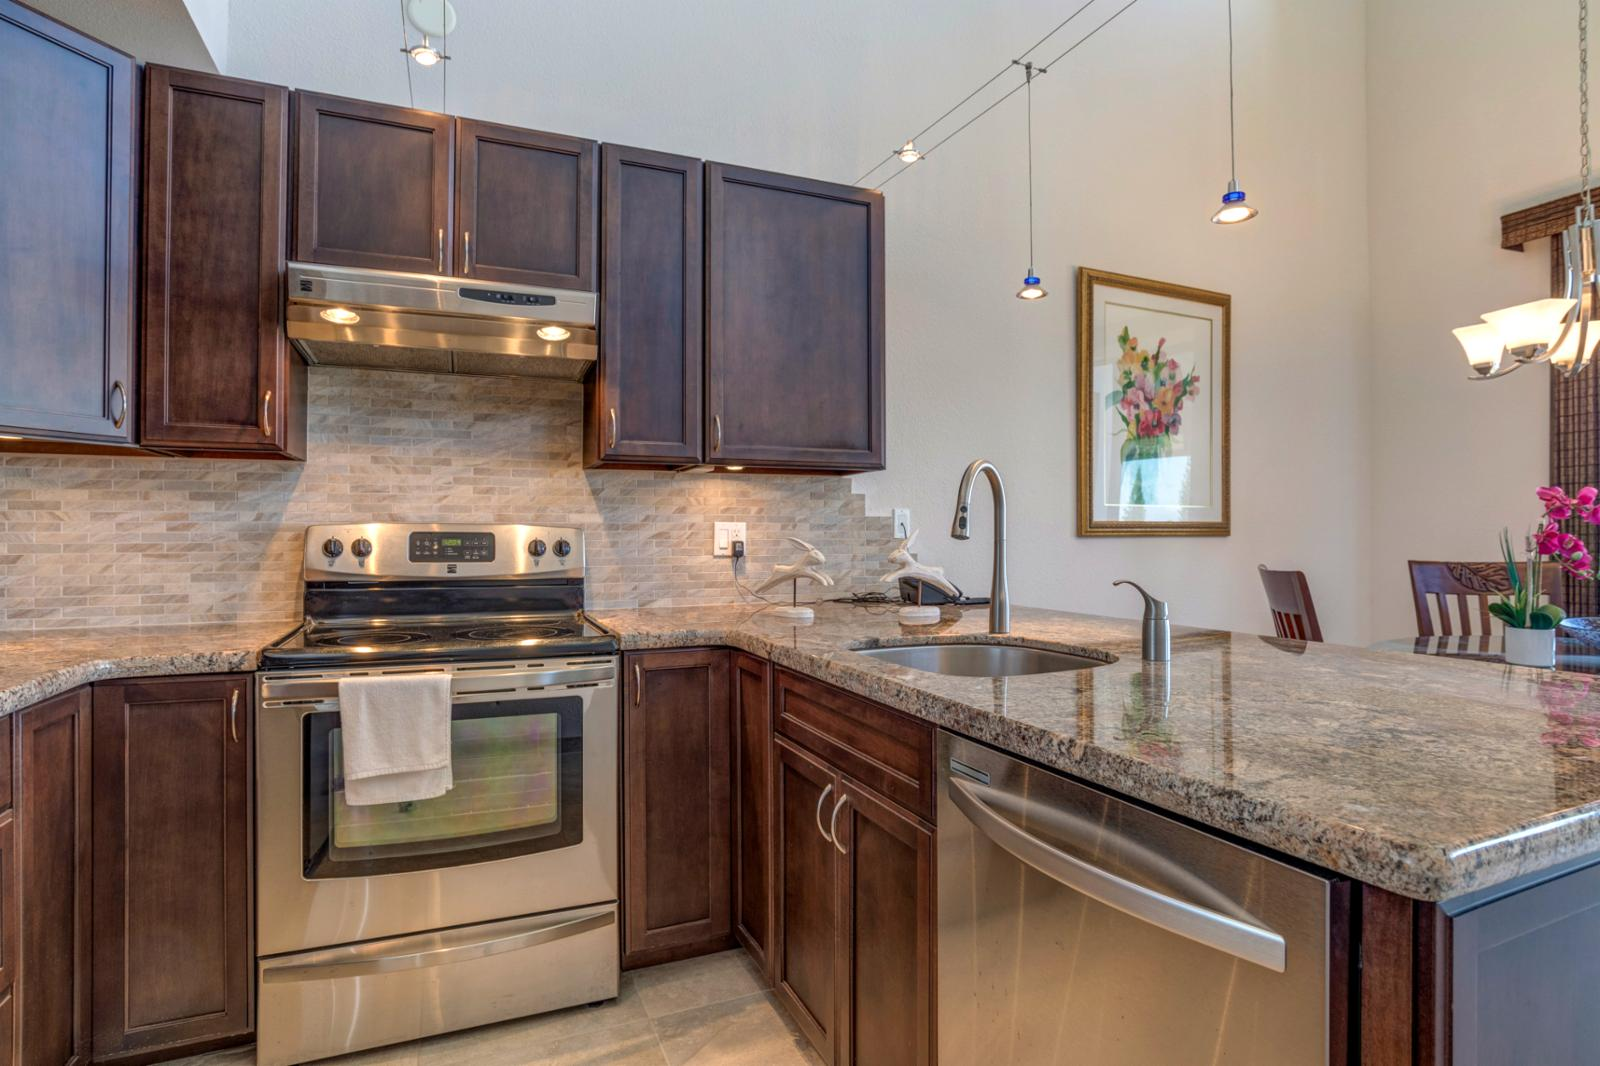 Stainless steel appliances throughout, vaulted ceilings above kitchen